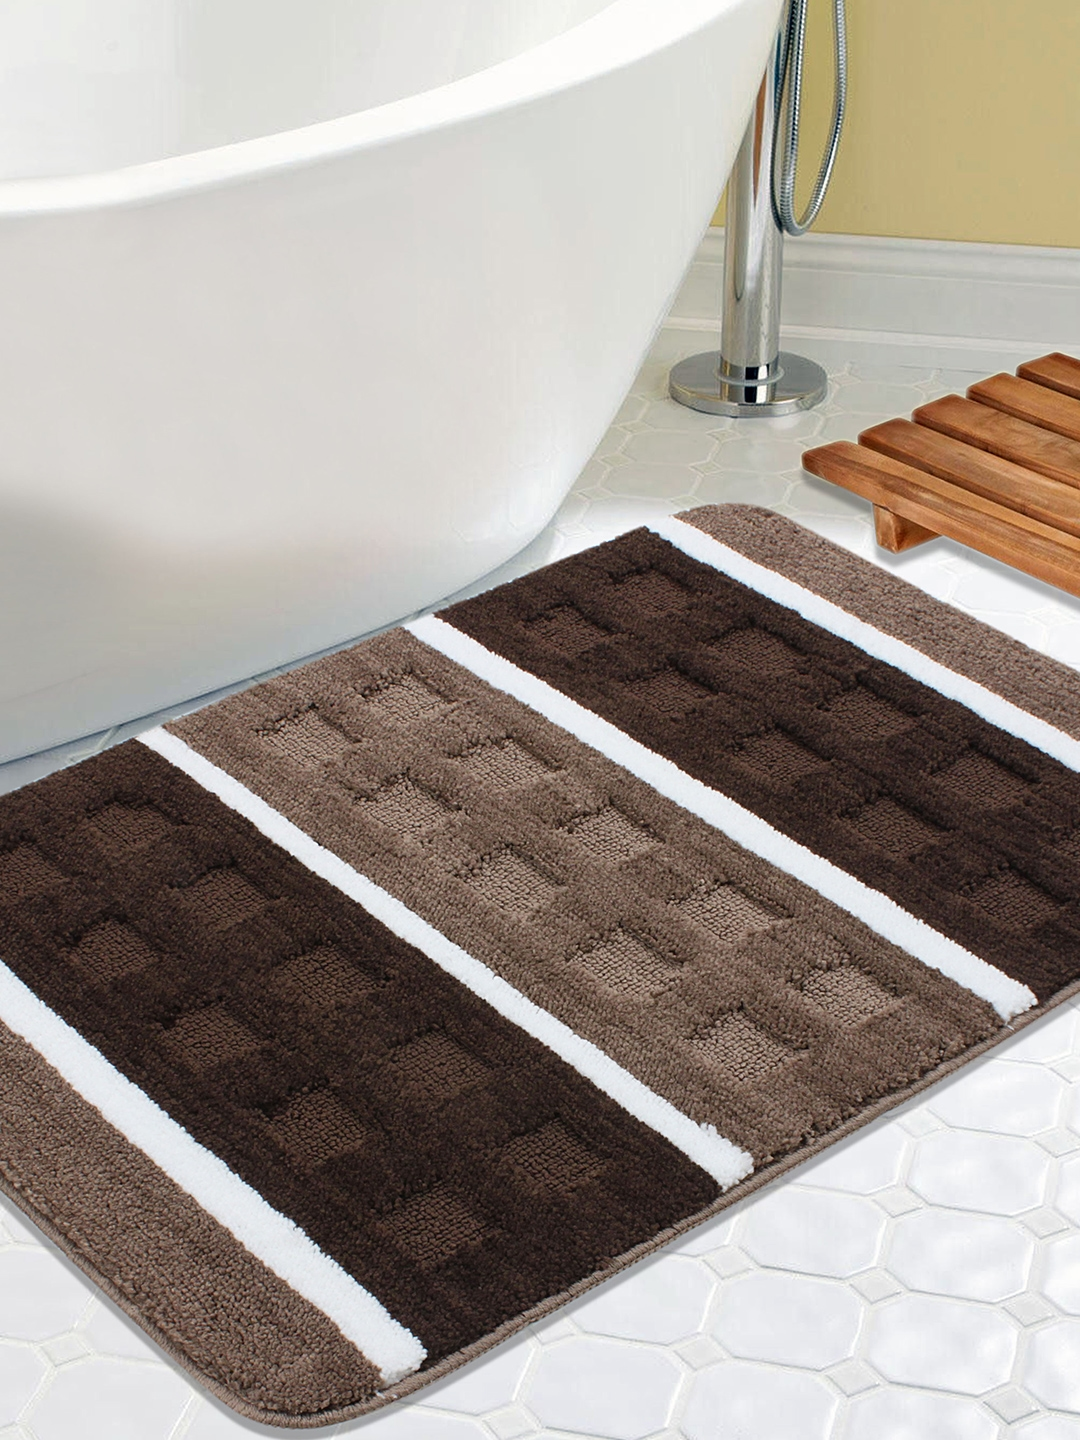 3f259bd42083 Buy Saral Home Brown Striped Rectangular Bath Rug - Bath Rugs for ...